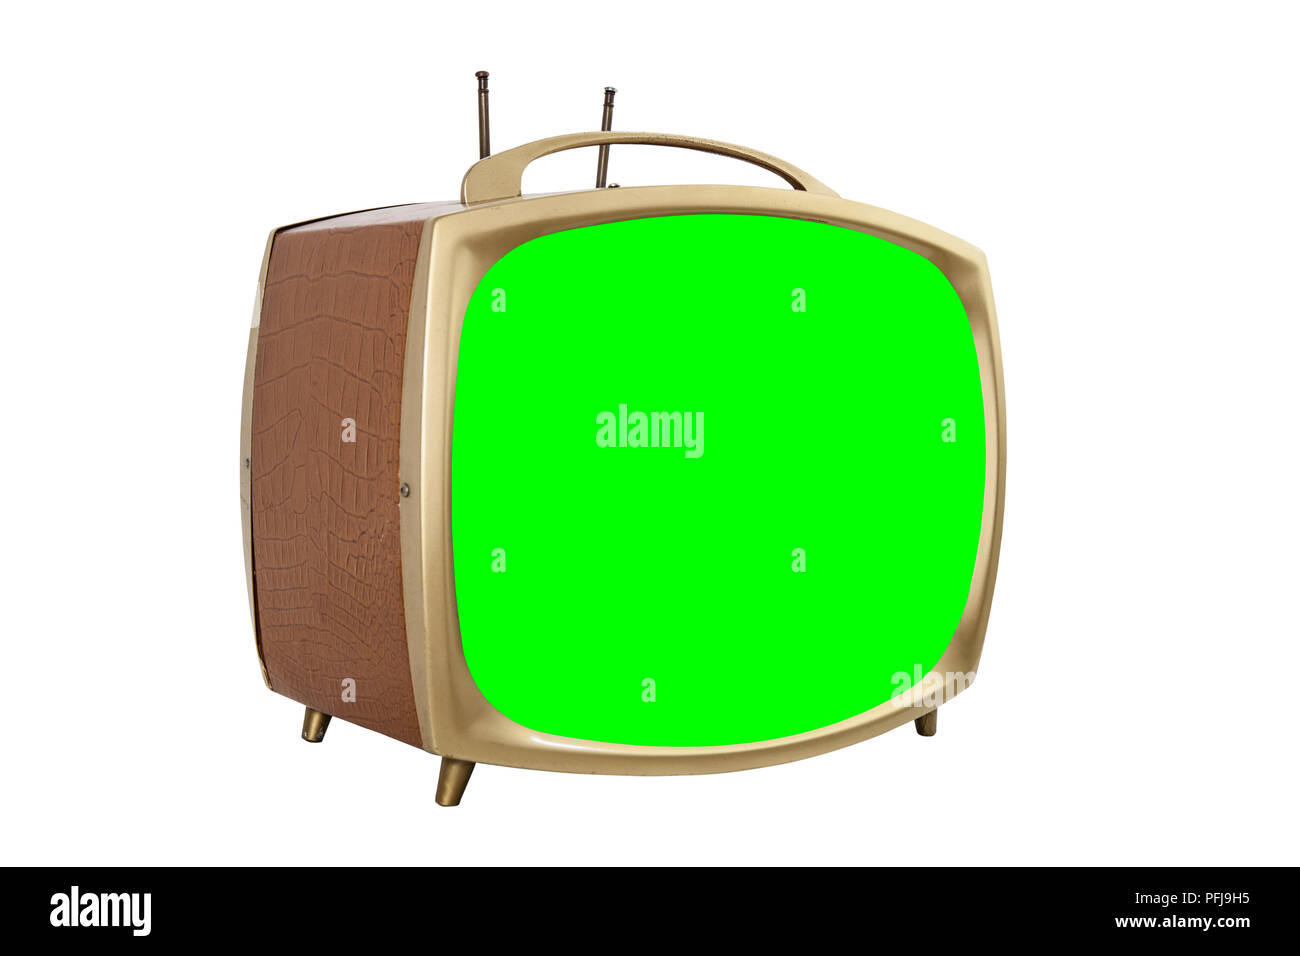 Retro 1950s portable television with chroma key green screen. - Stock Image